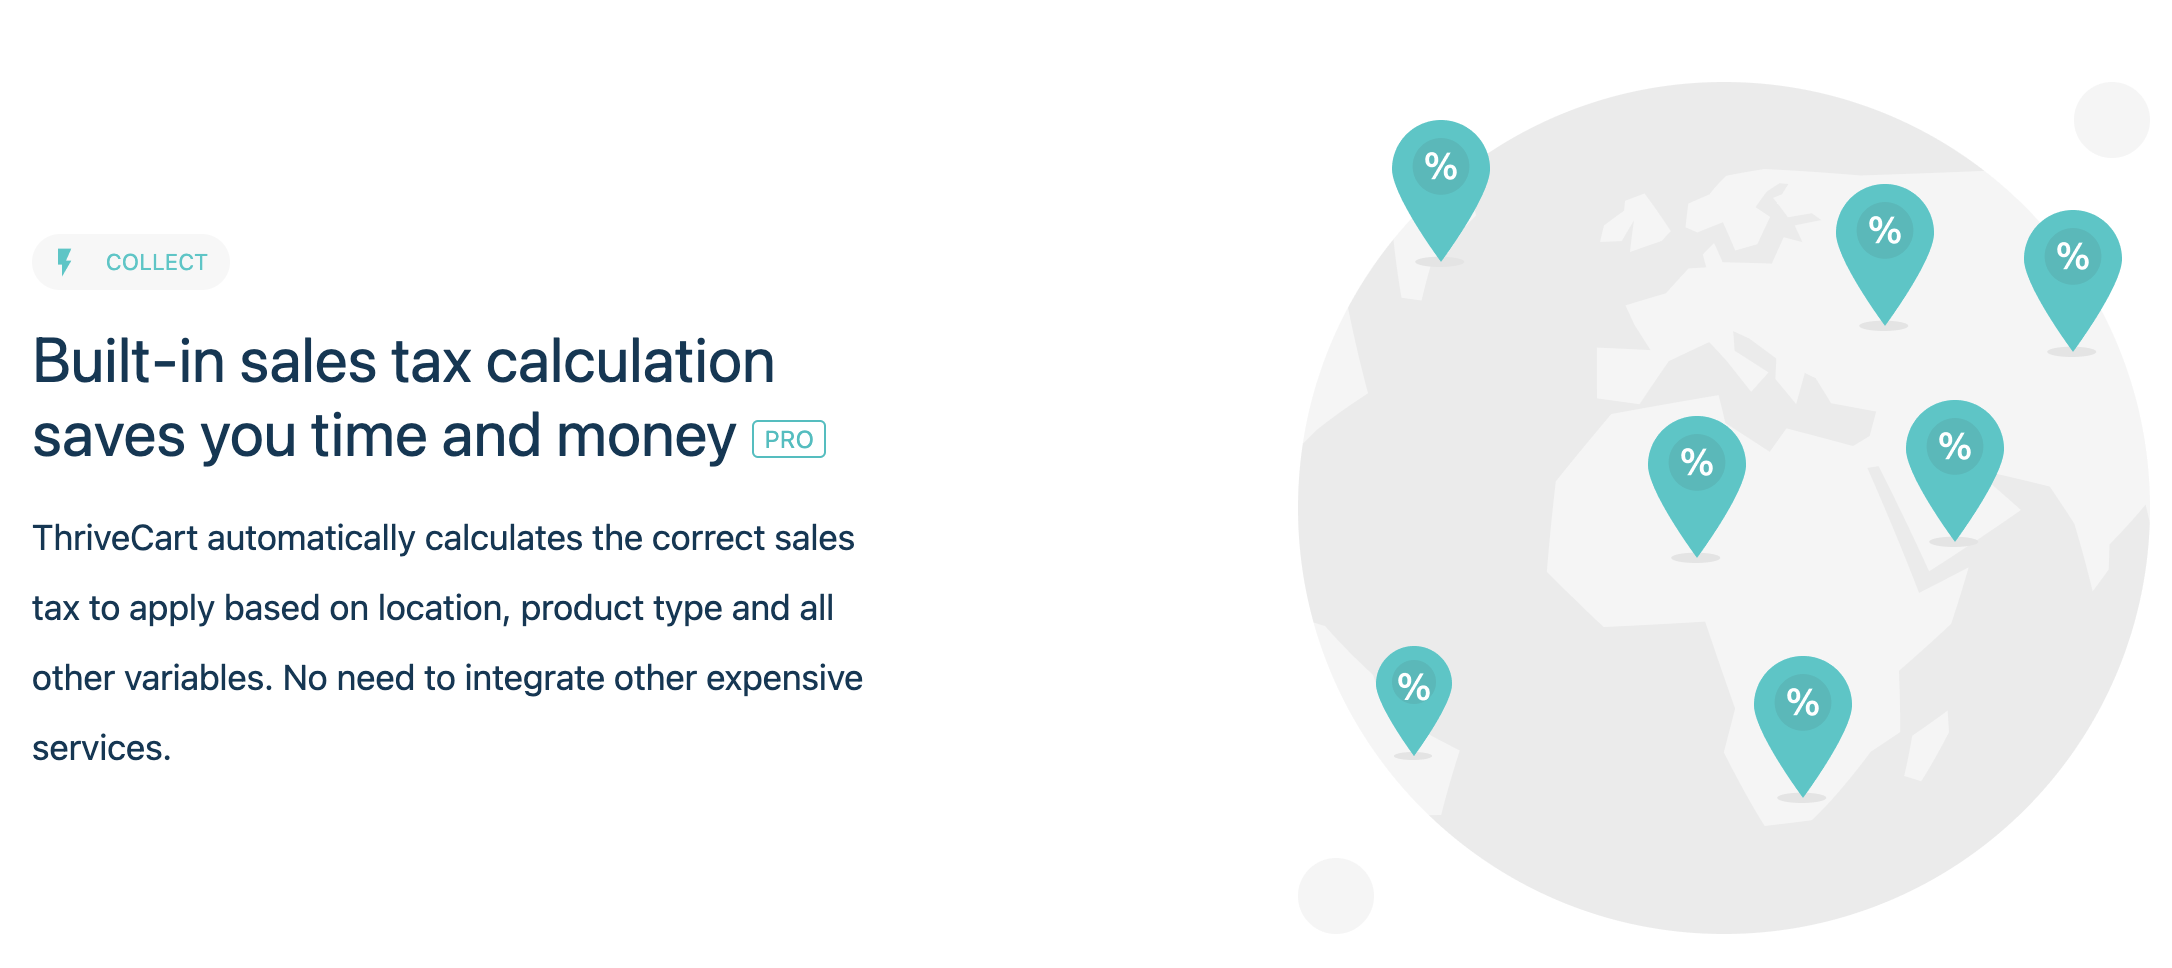 ThriveCart review: ThriveCart automatically calculates the correct sales tax to apply based on location, product type and all other variables. No need to integrate other expensive services.